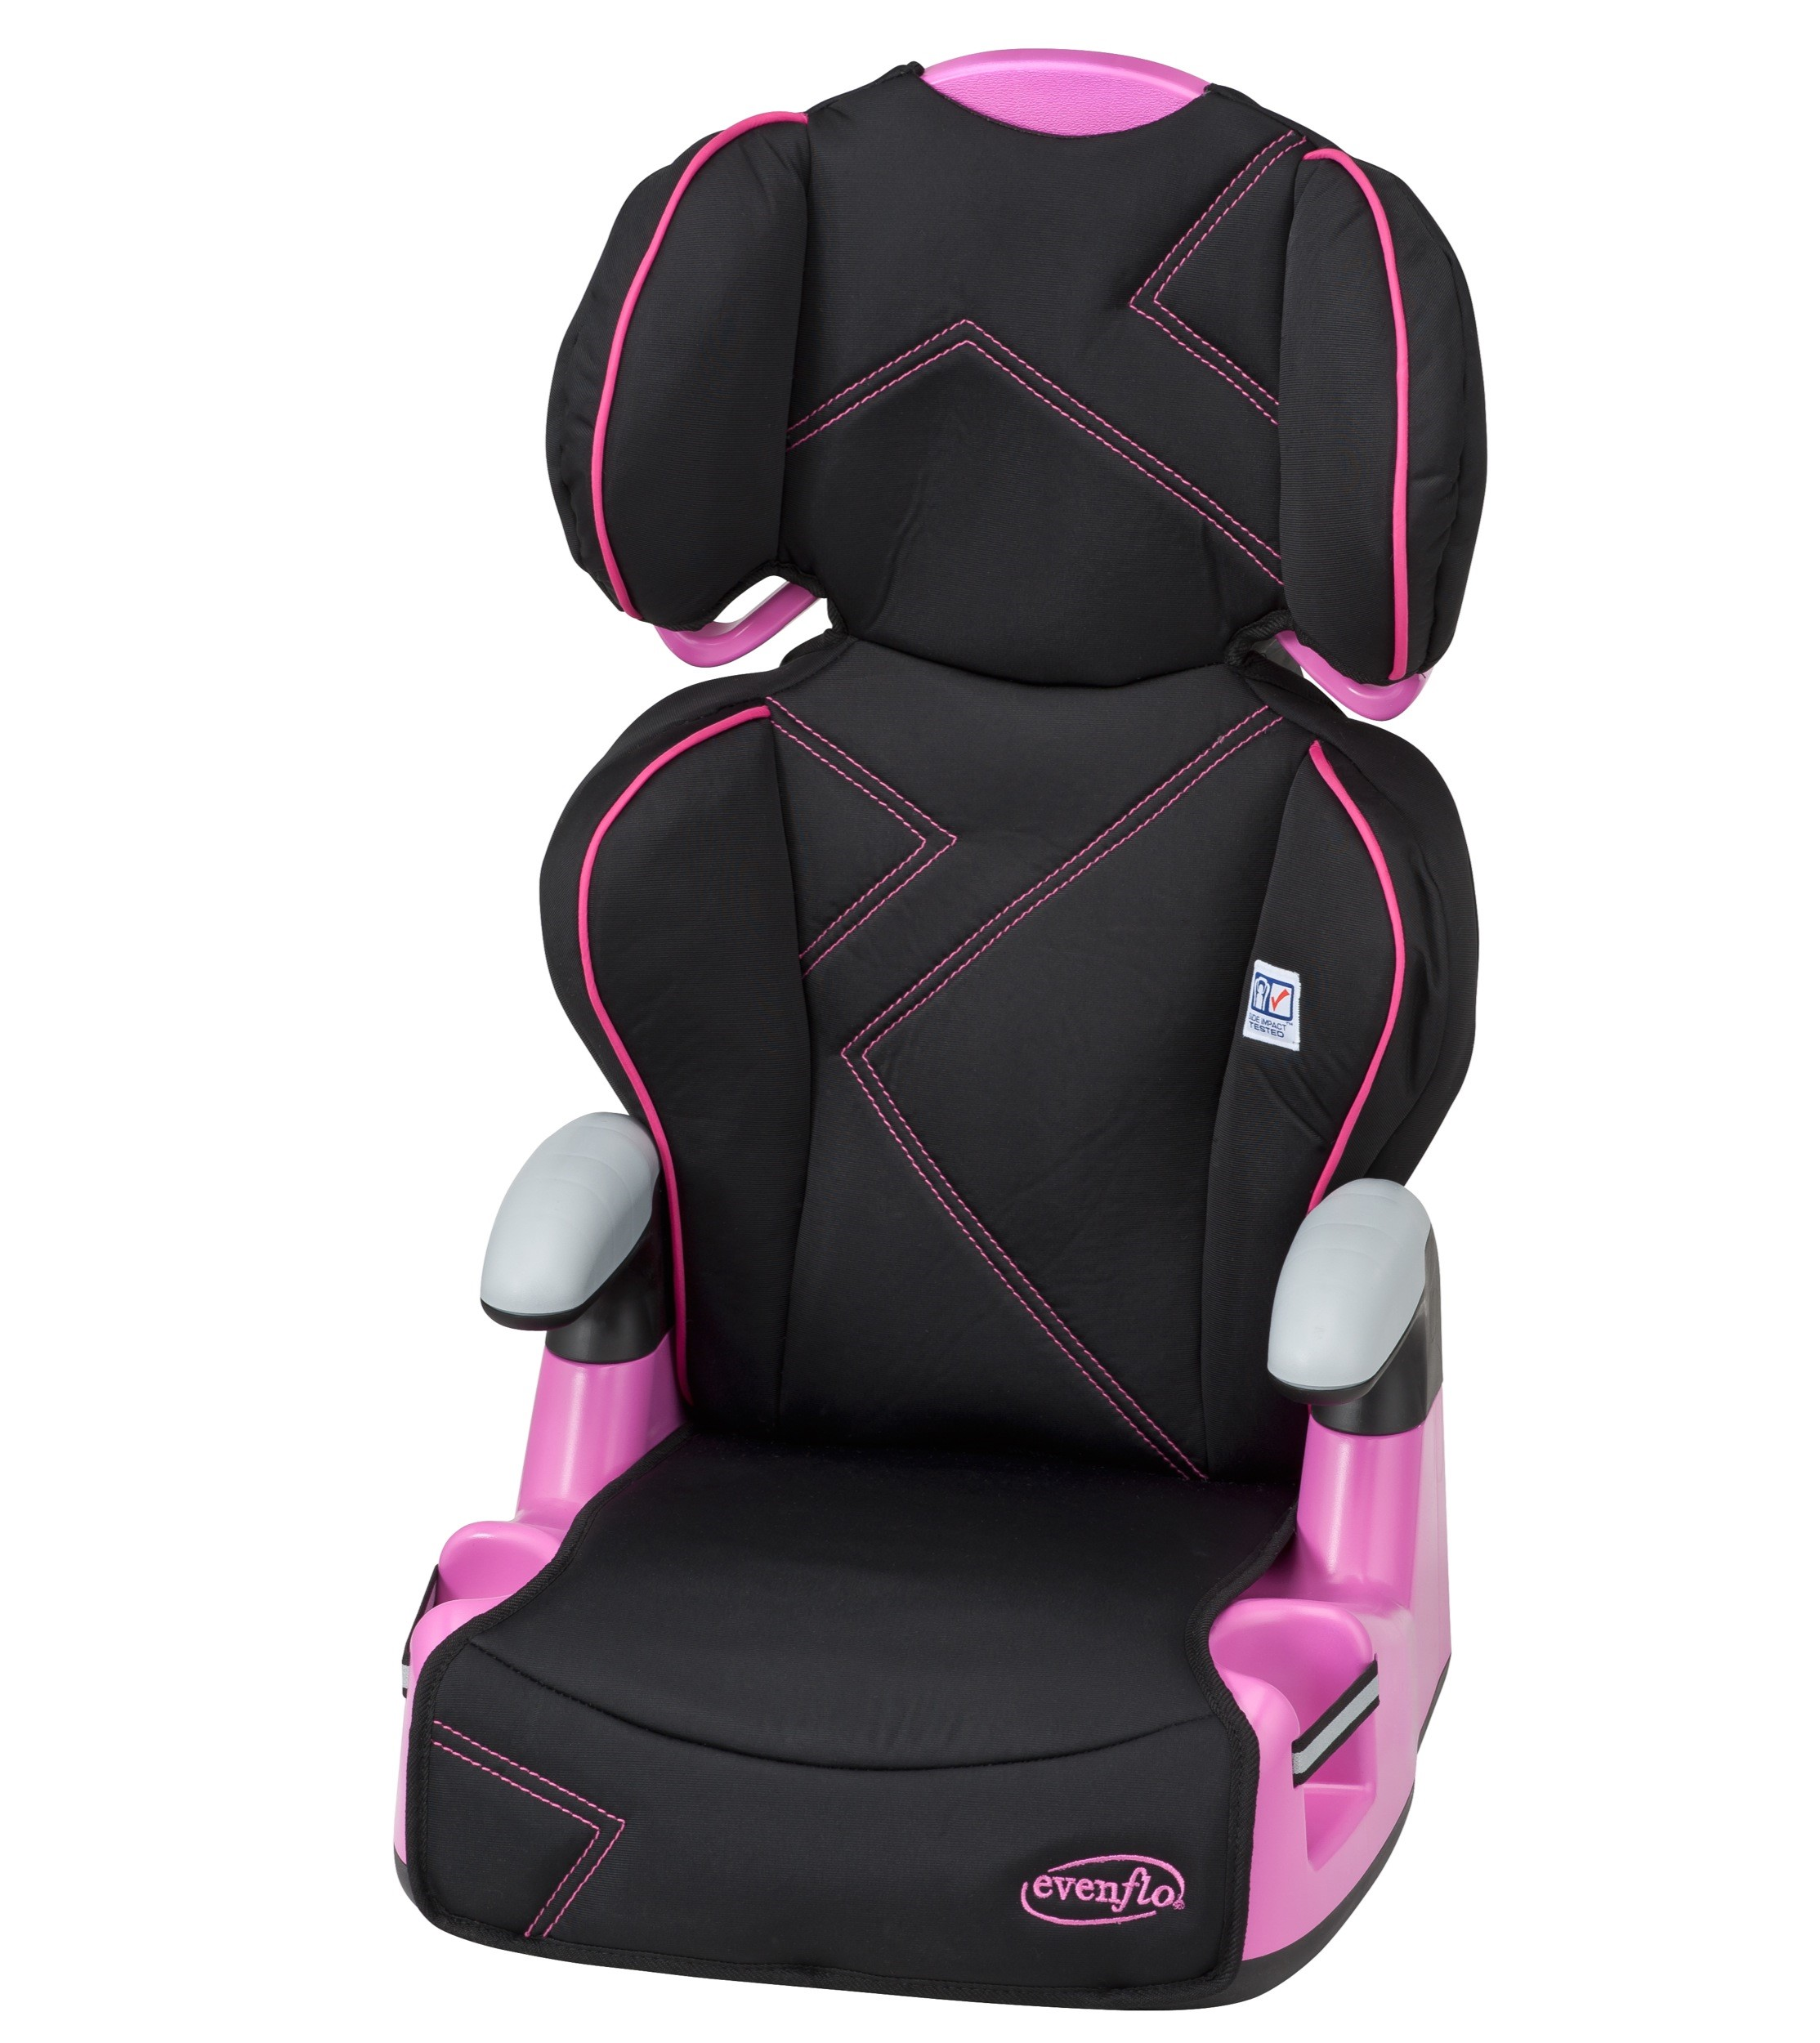 Evenflo AMP? Belt-Positioning High Back Booster Car Seat, Pink Angles